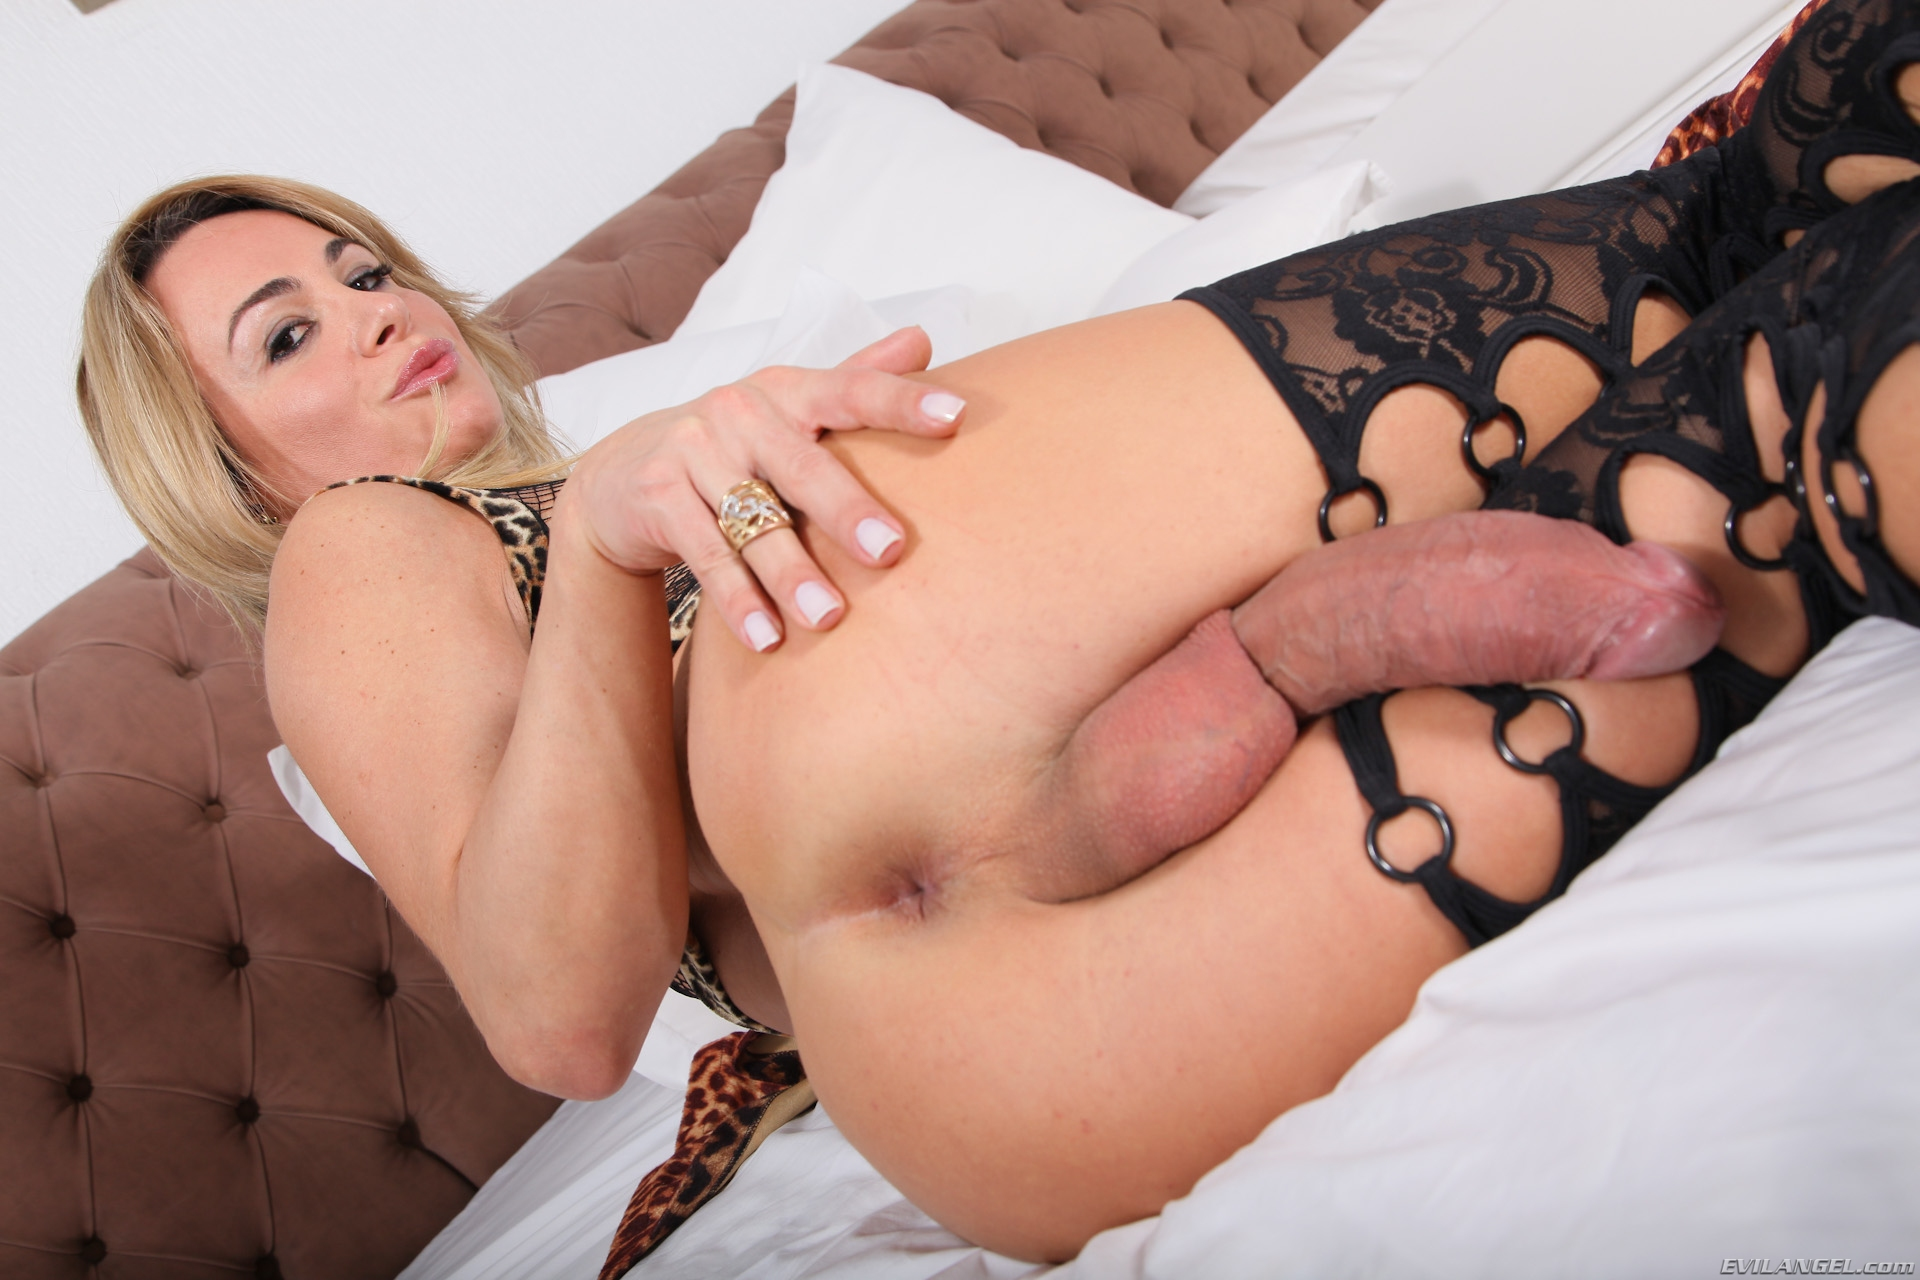 Free Free Shemale Sex Images, Tranny Porno In Full Length